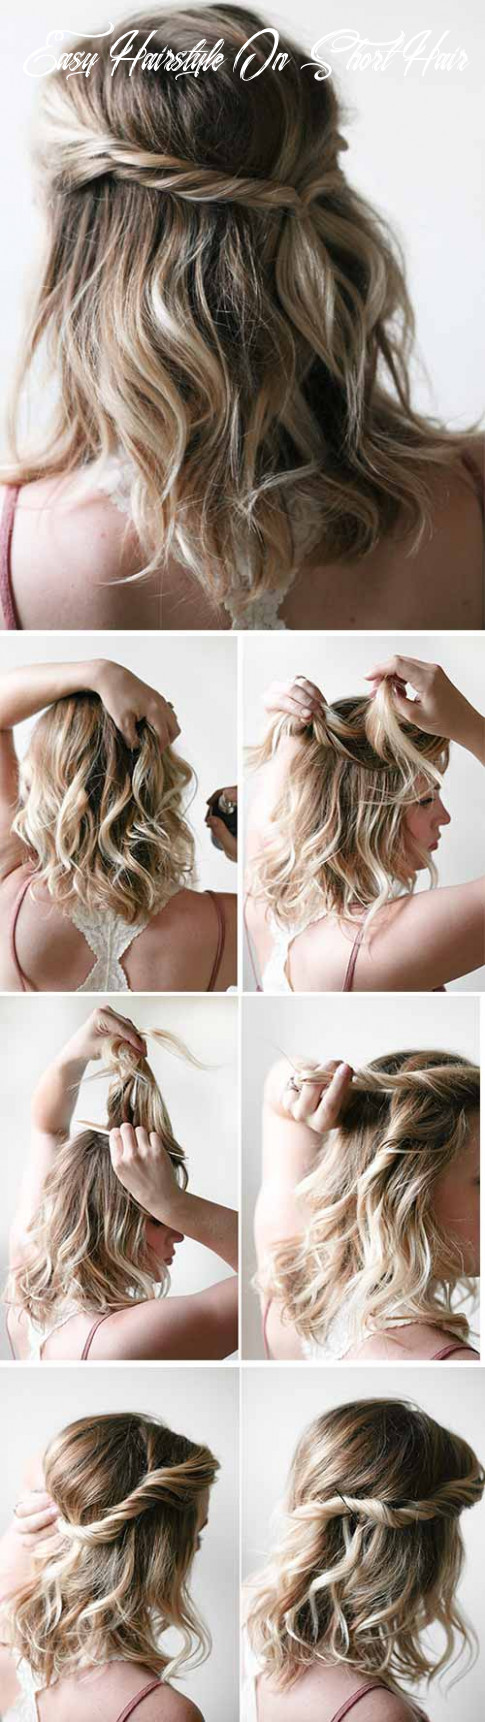 10 incredible diy short hairstyles a step by step guide easy hairstyle on short hair